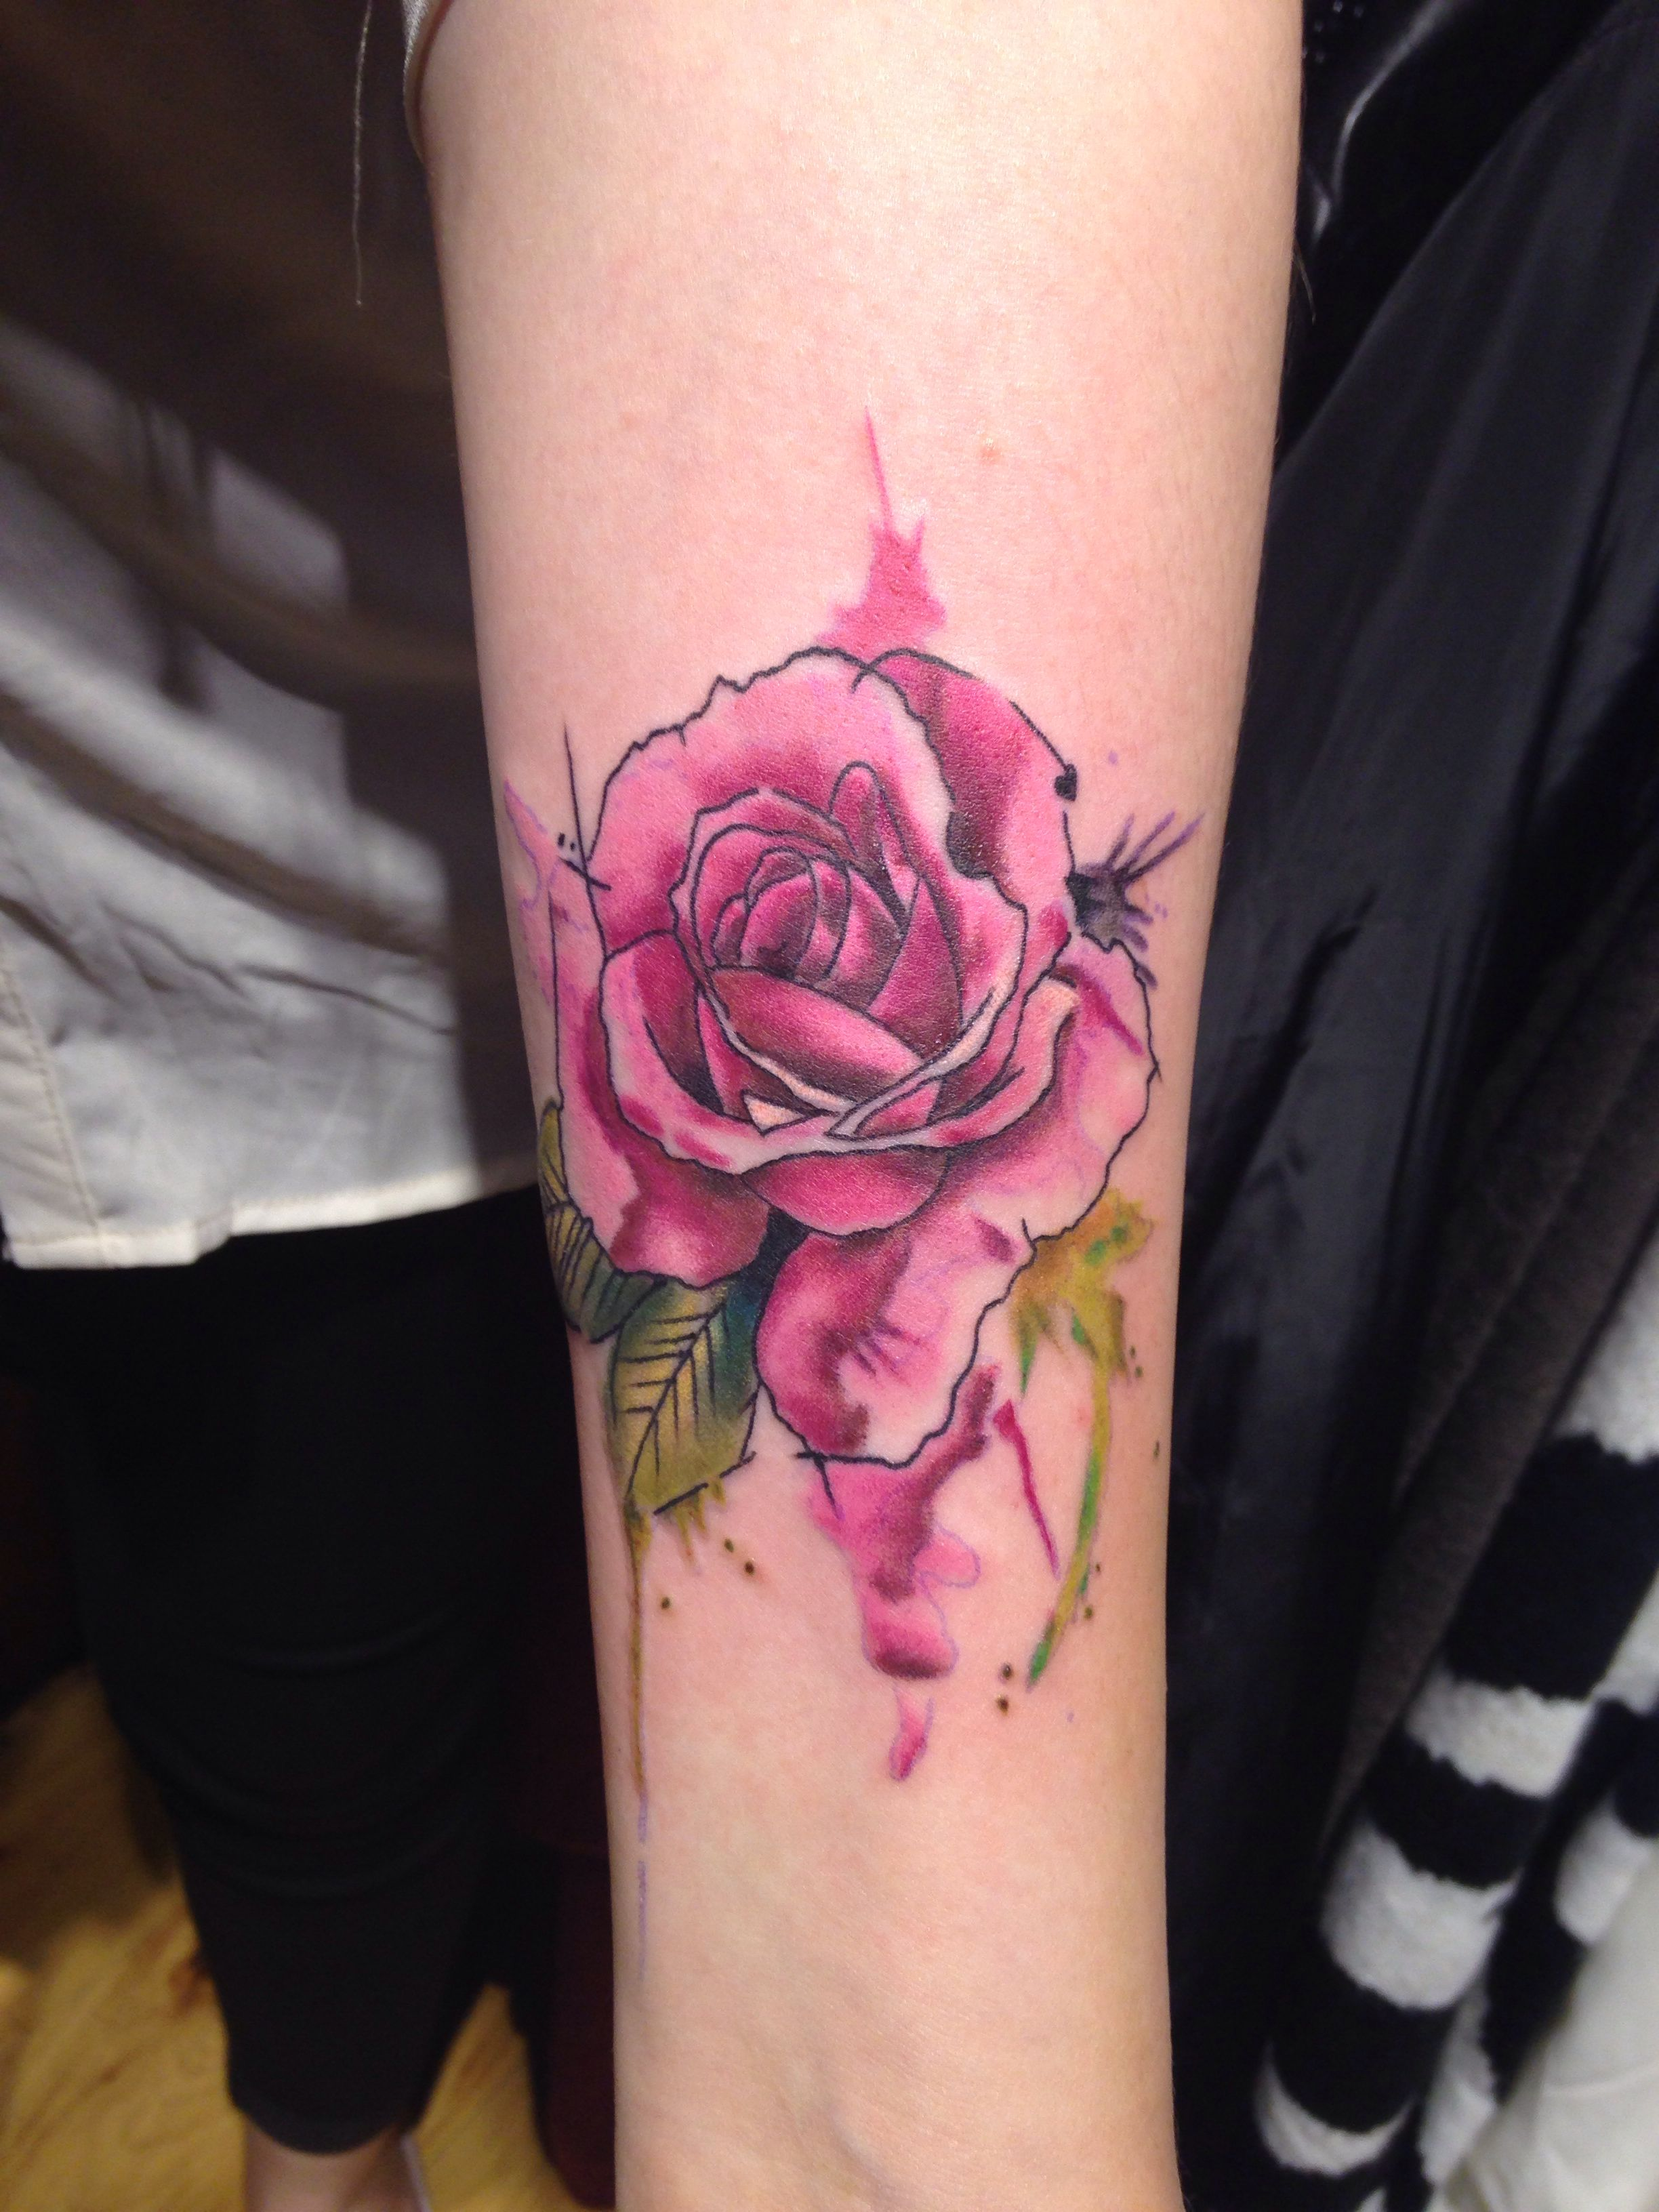 Rose Tattoos Flower: Rose Tattoos, Trendy Tattoos